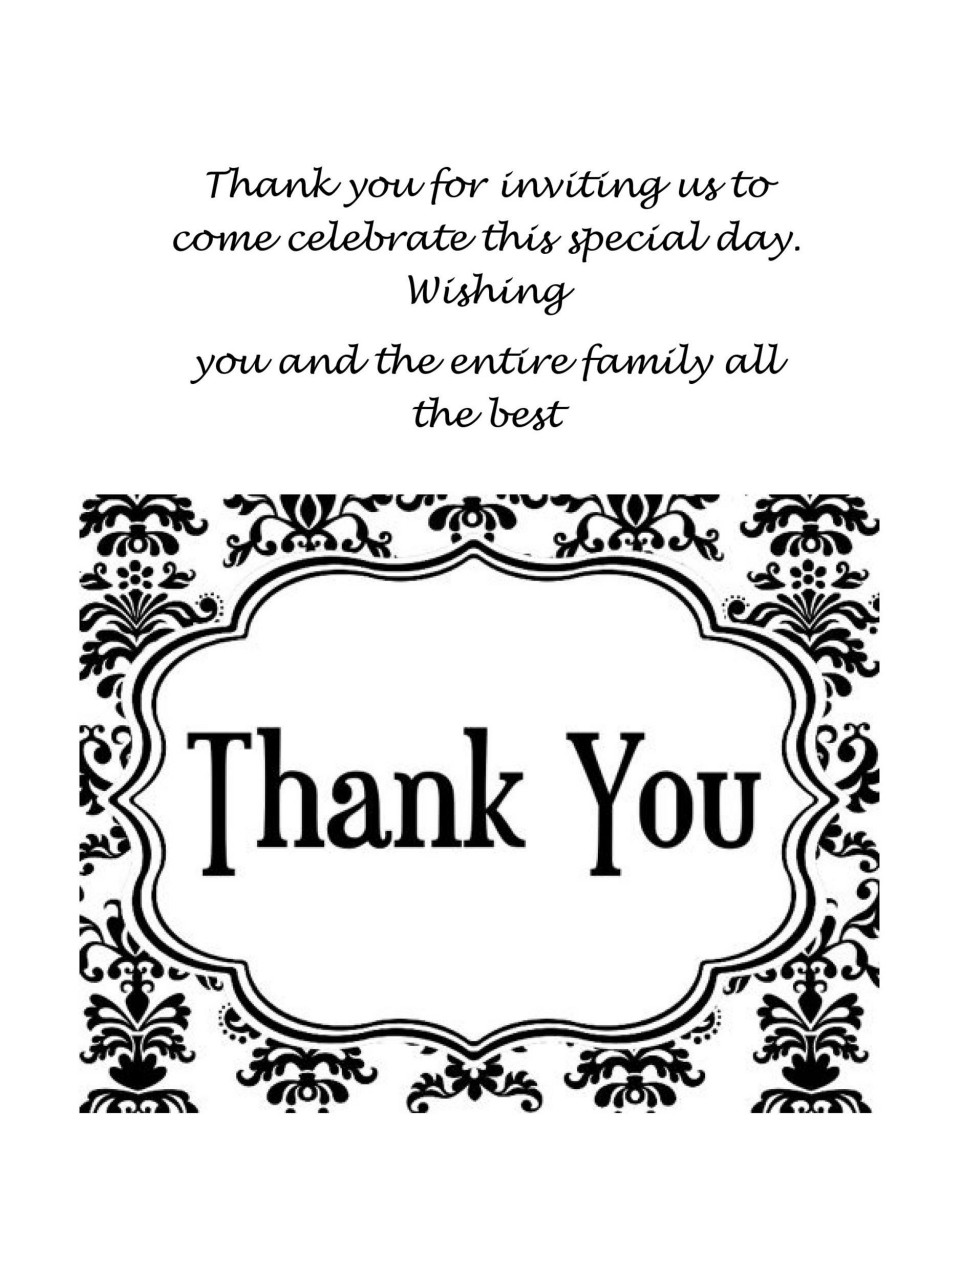 008 Archaicawful Thank You Card Template Design  Wedding Busines Word Free960